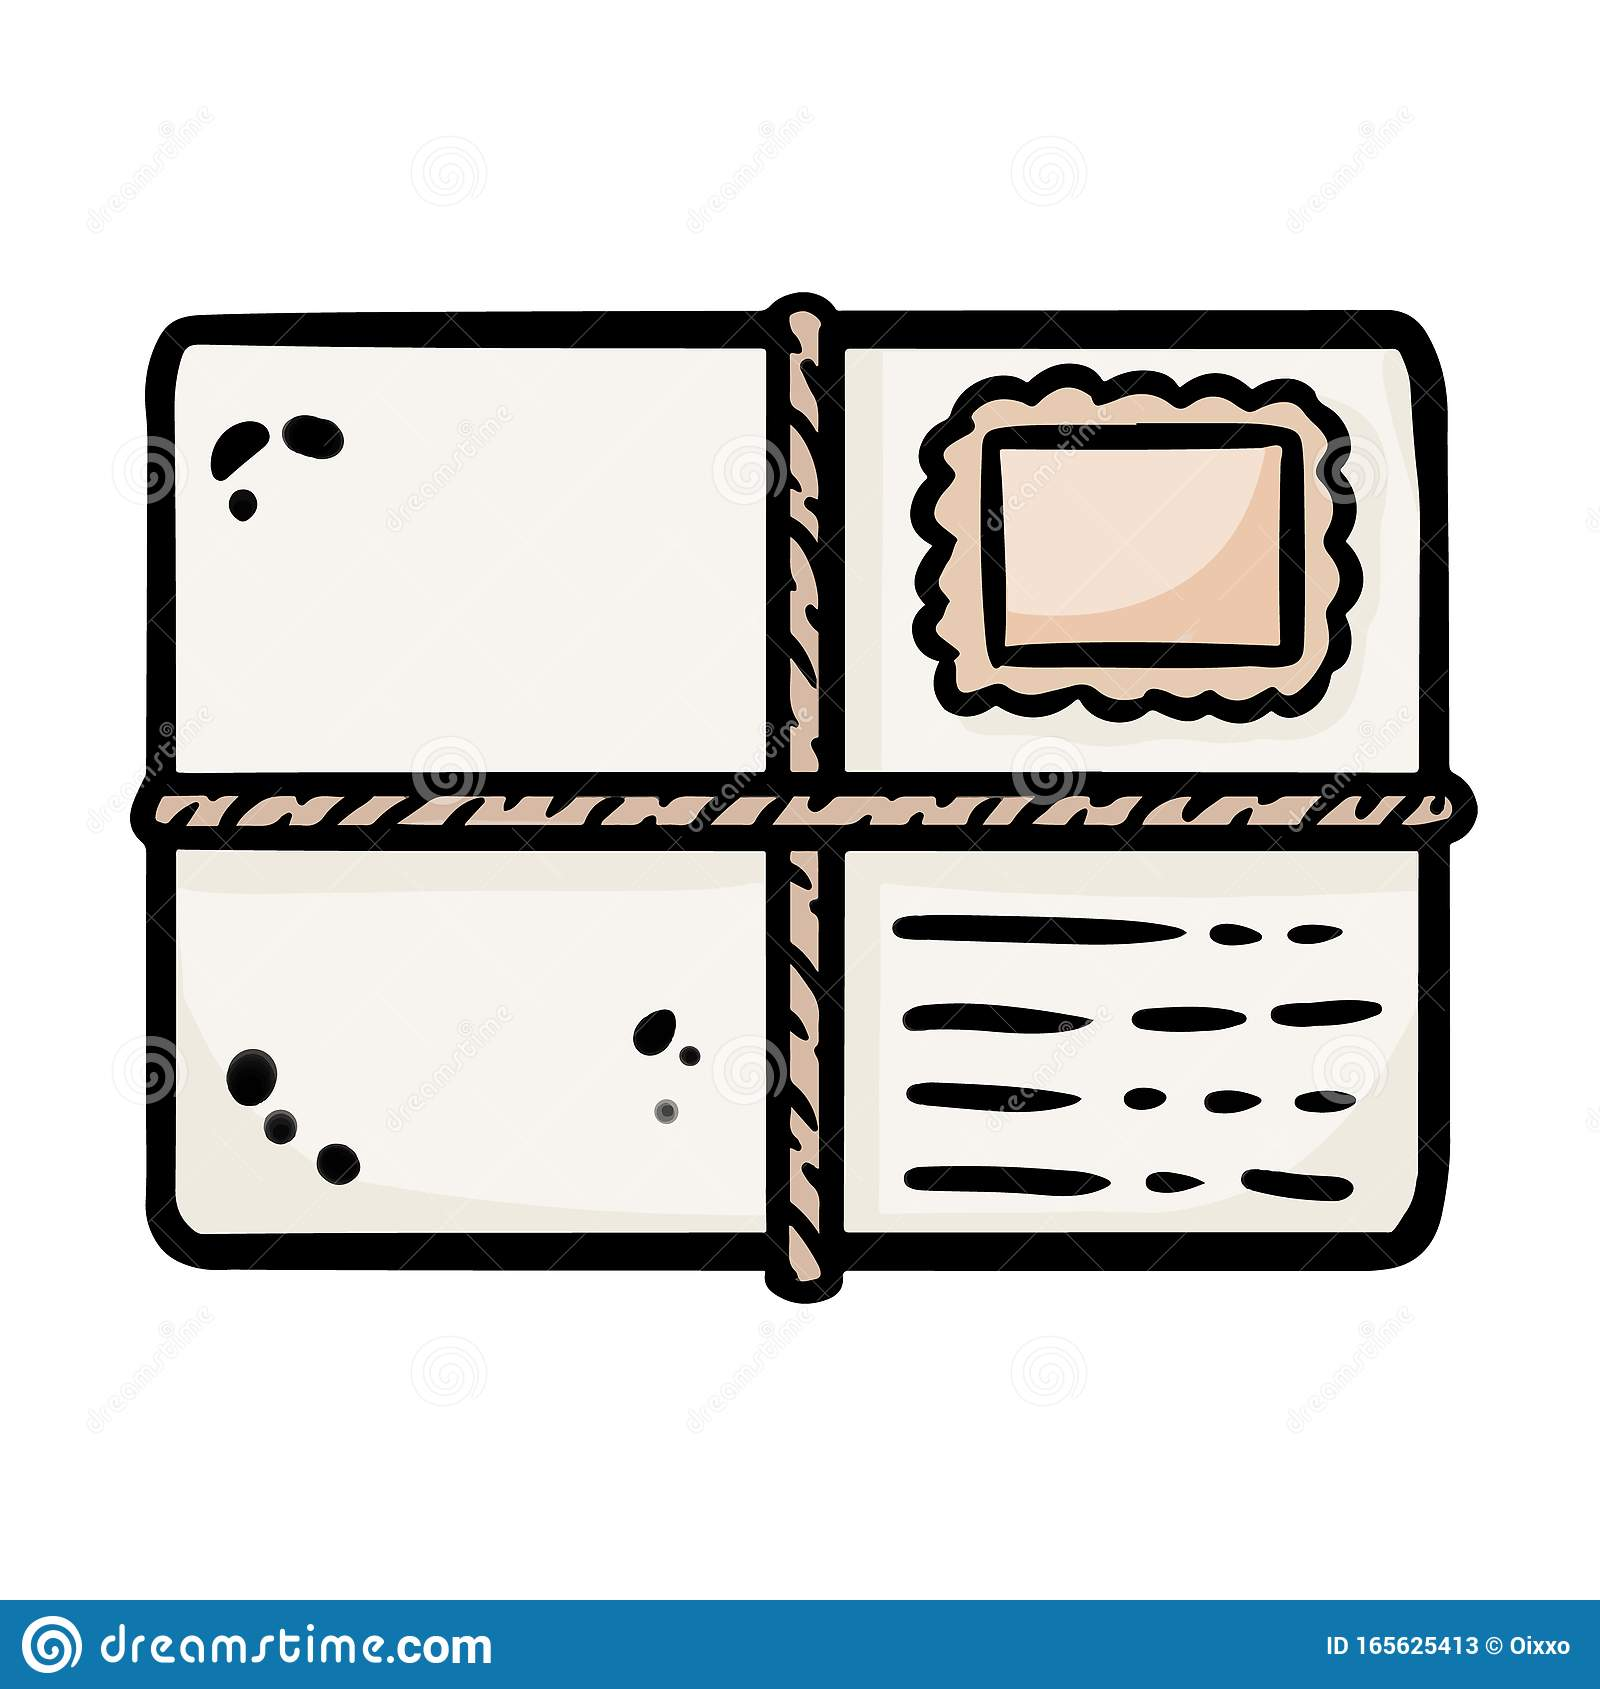 Snail Mail Icon Stock Illustrations 327 Snail Mail Icon Stock Illustrations Vectors Clipart Dreamstime